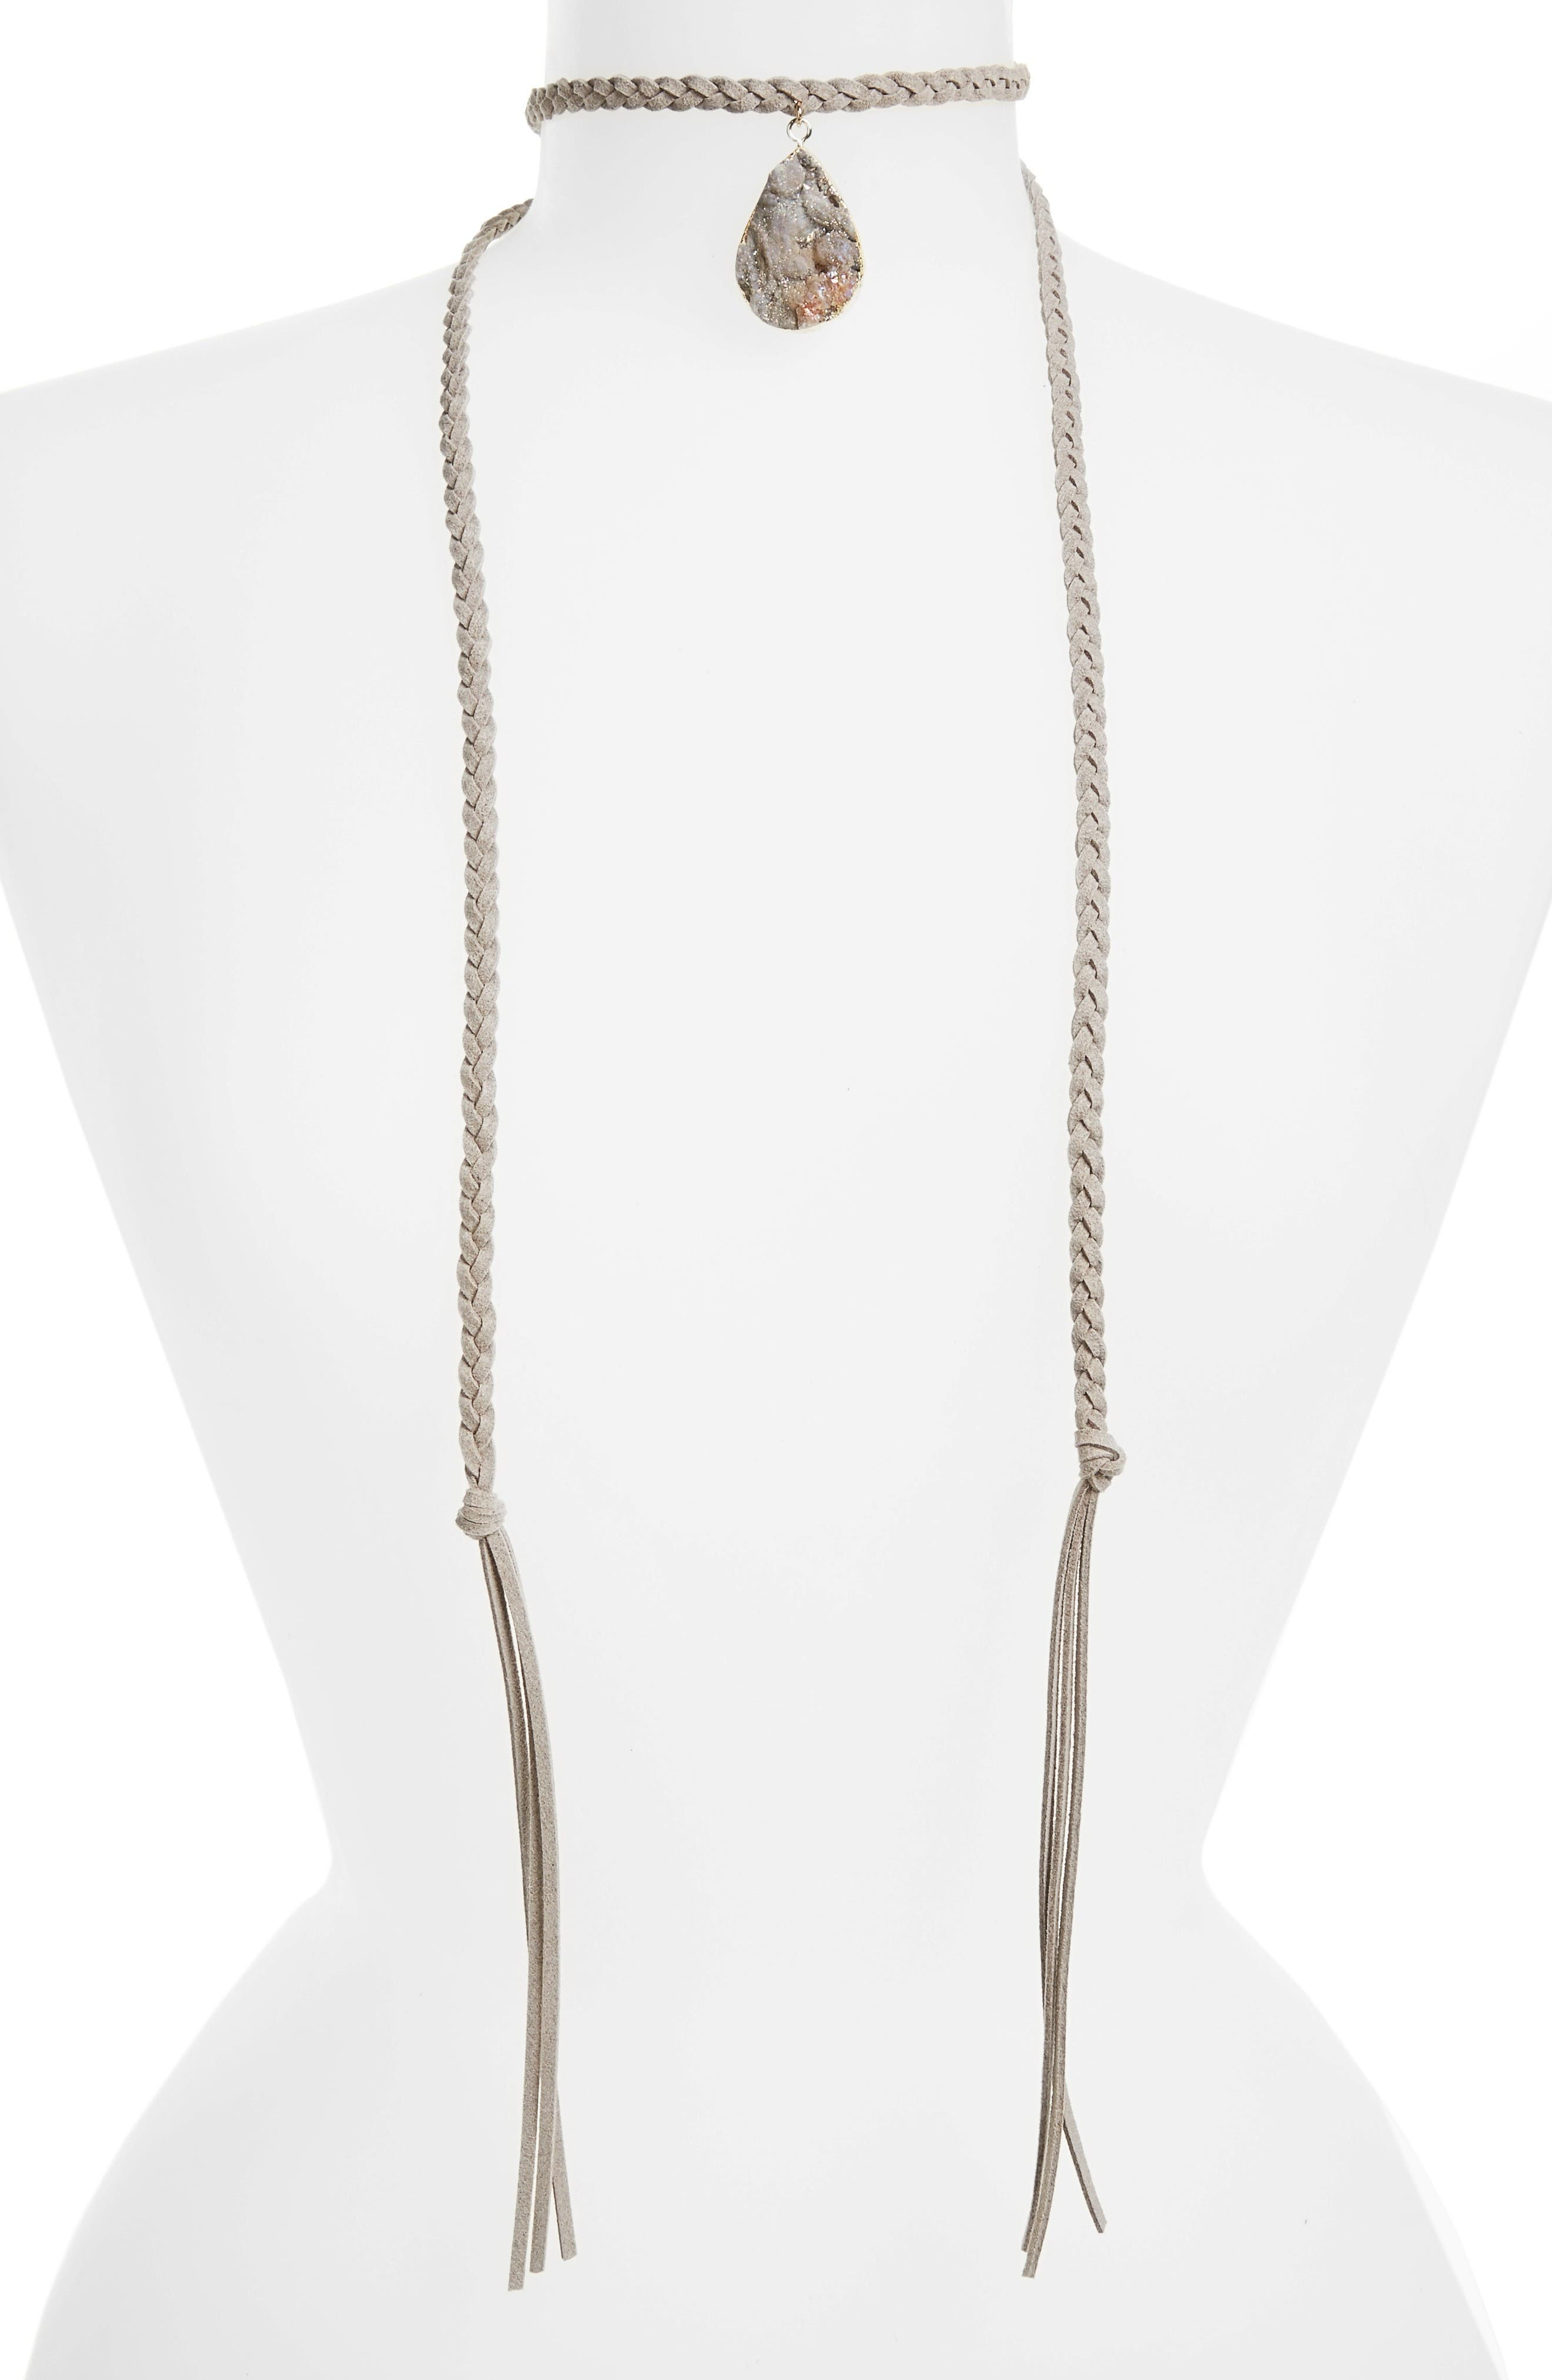 Main Image - Panacea Long Wrap Choker Necklace